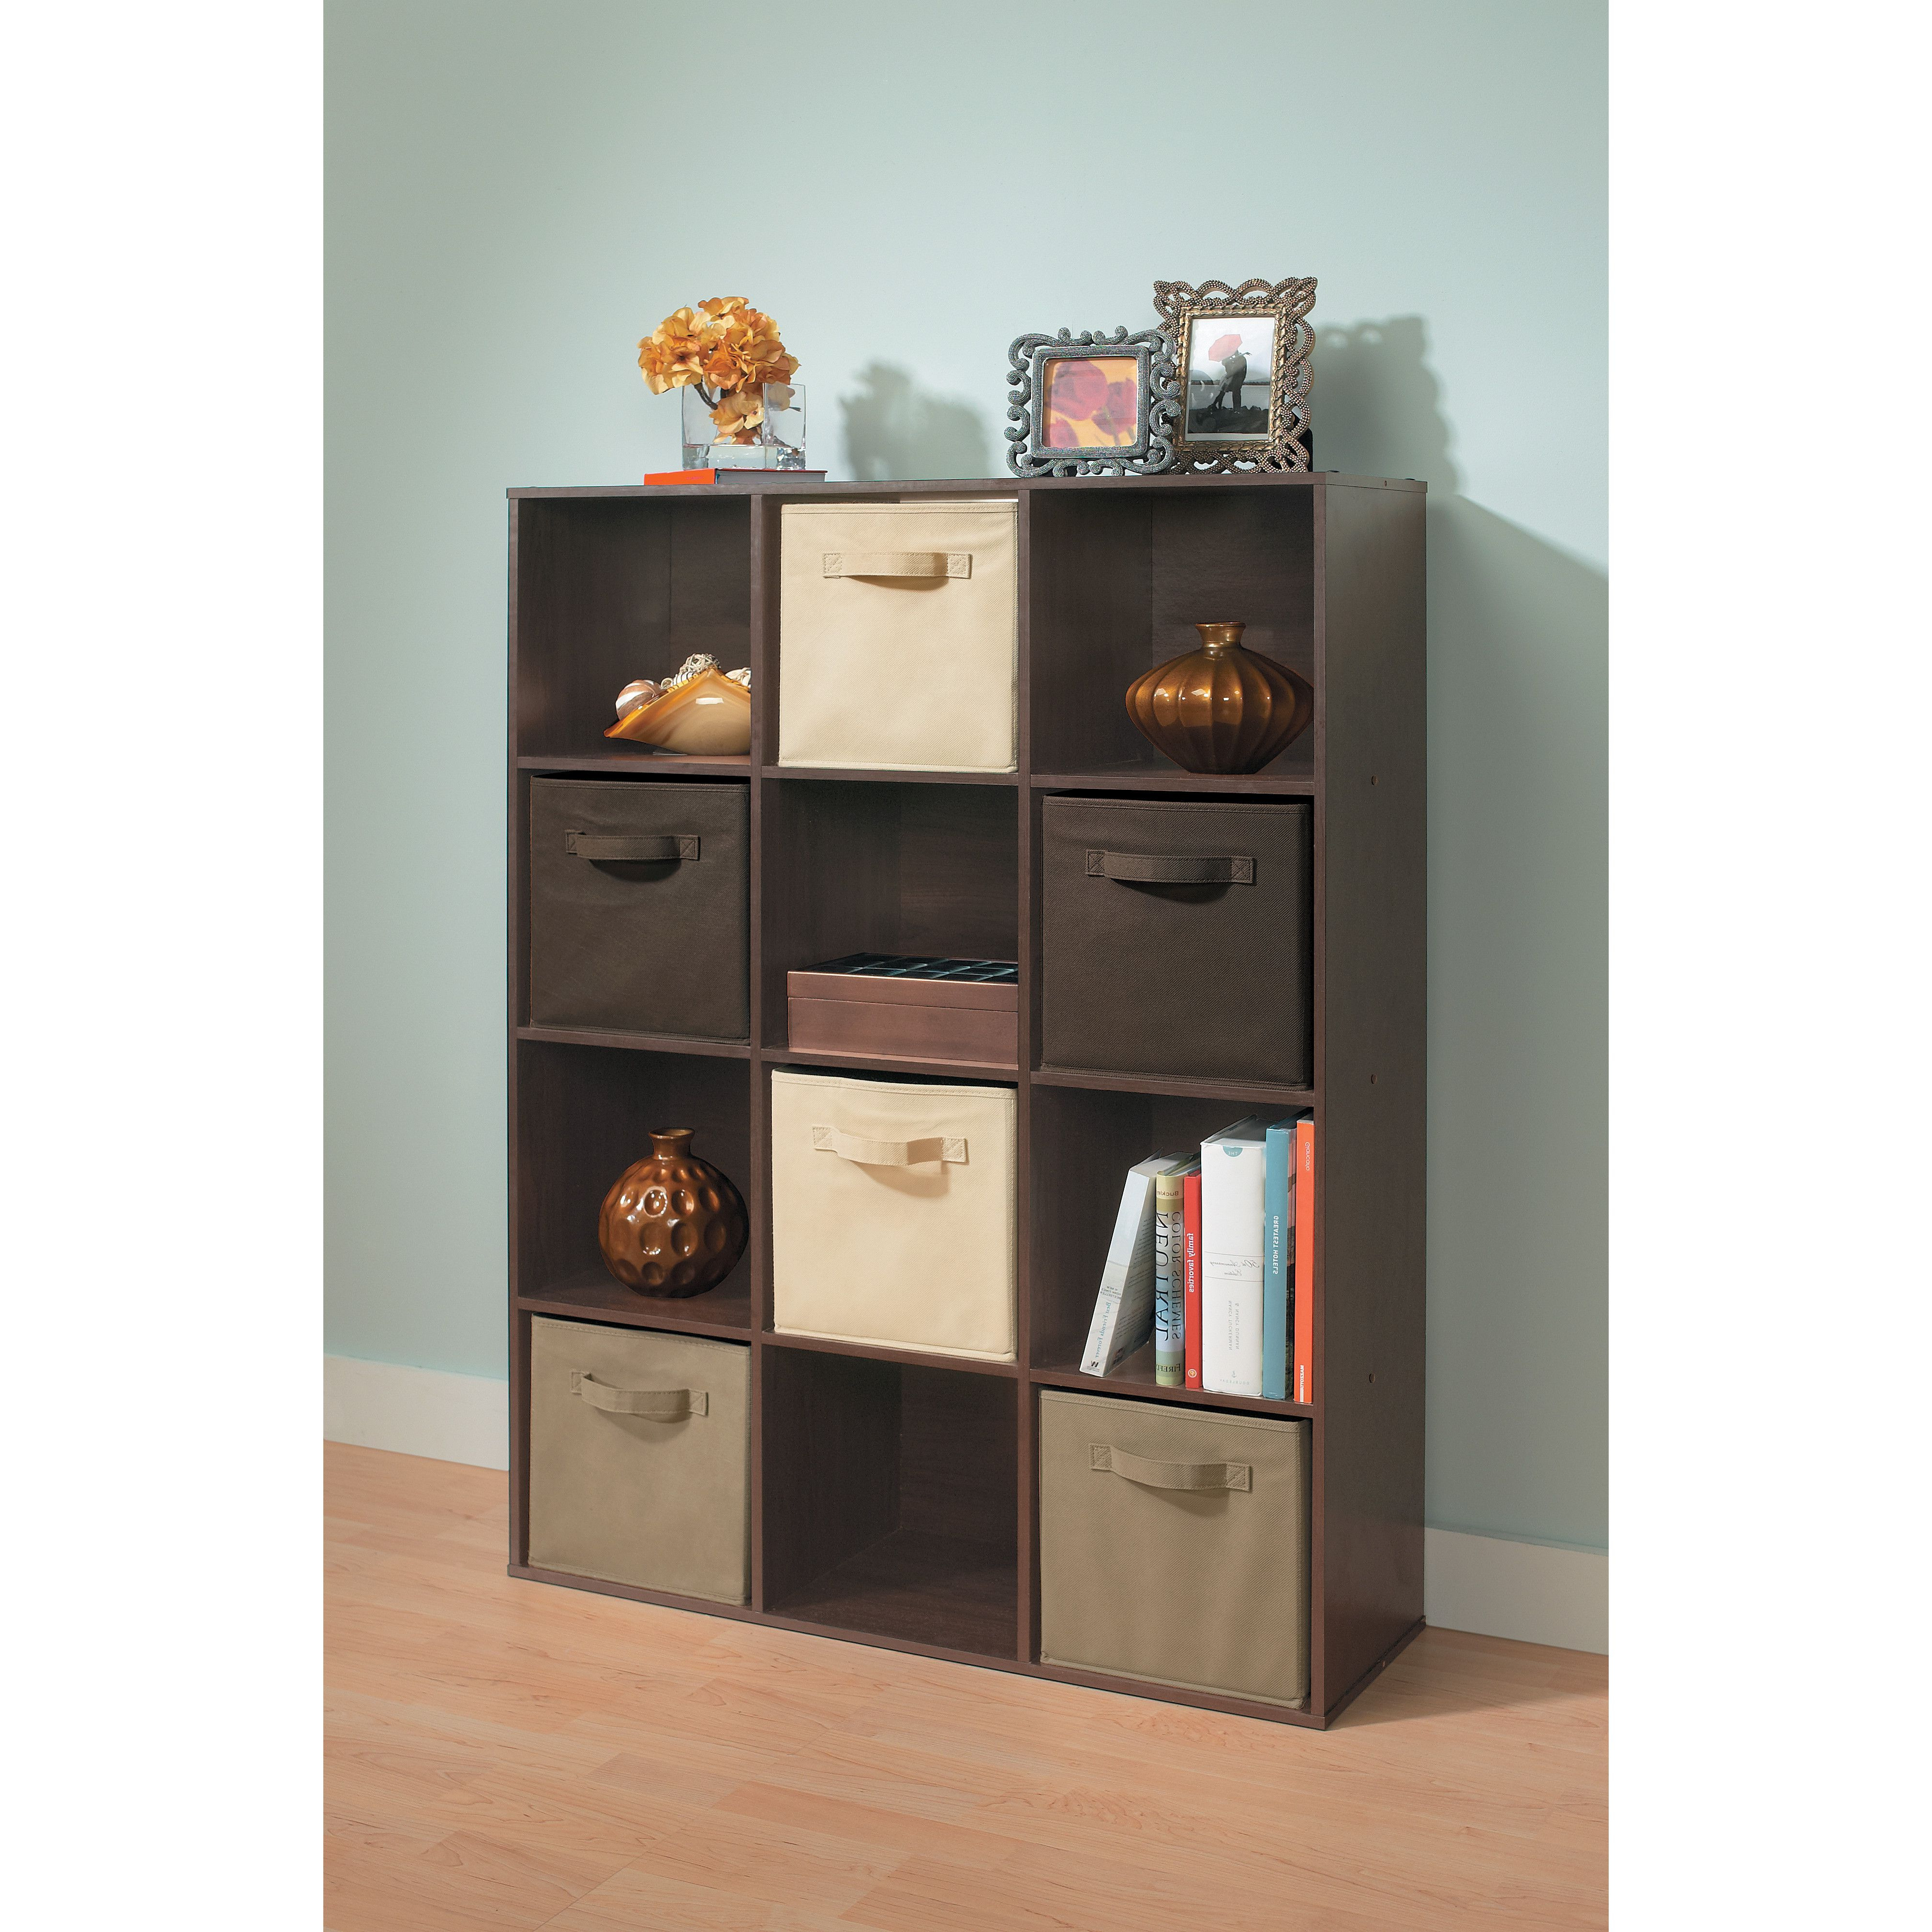 Cubicals Cube Bookcase In 2019 (Gallery 4 of 20)